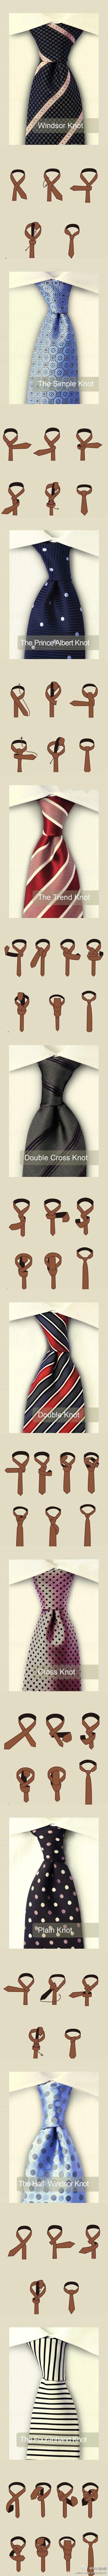 every women should at least learn how to tie a tie